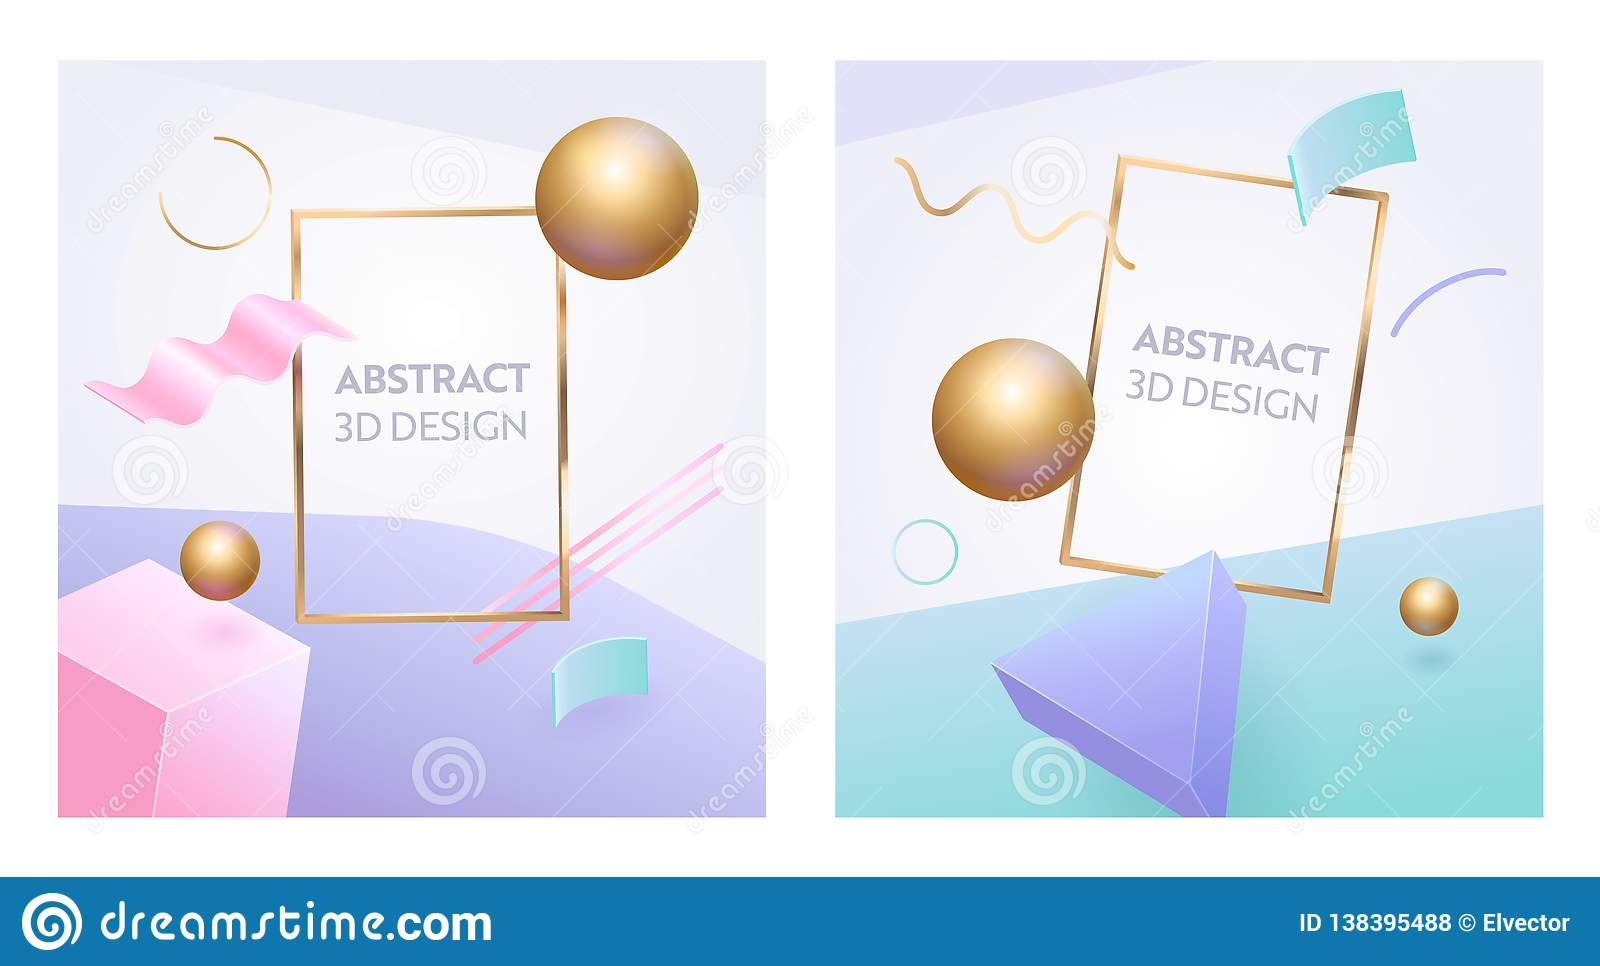 Abstract Geometric Figure Frame 3d Banner Set. Digital Graphic Sphere Shape Background for Advertising Marketing Poster